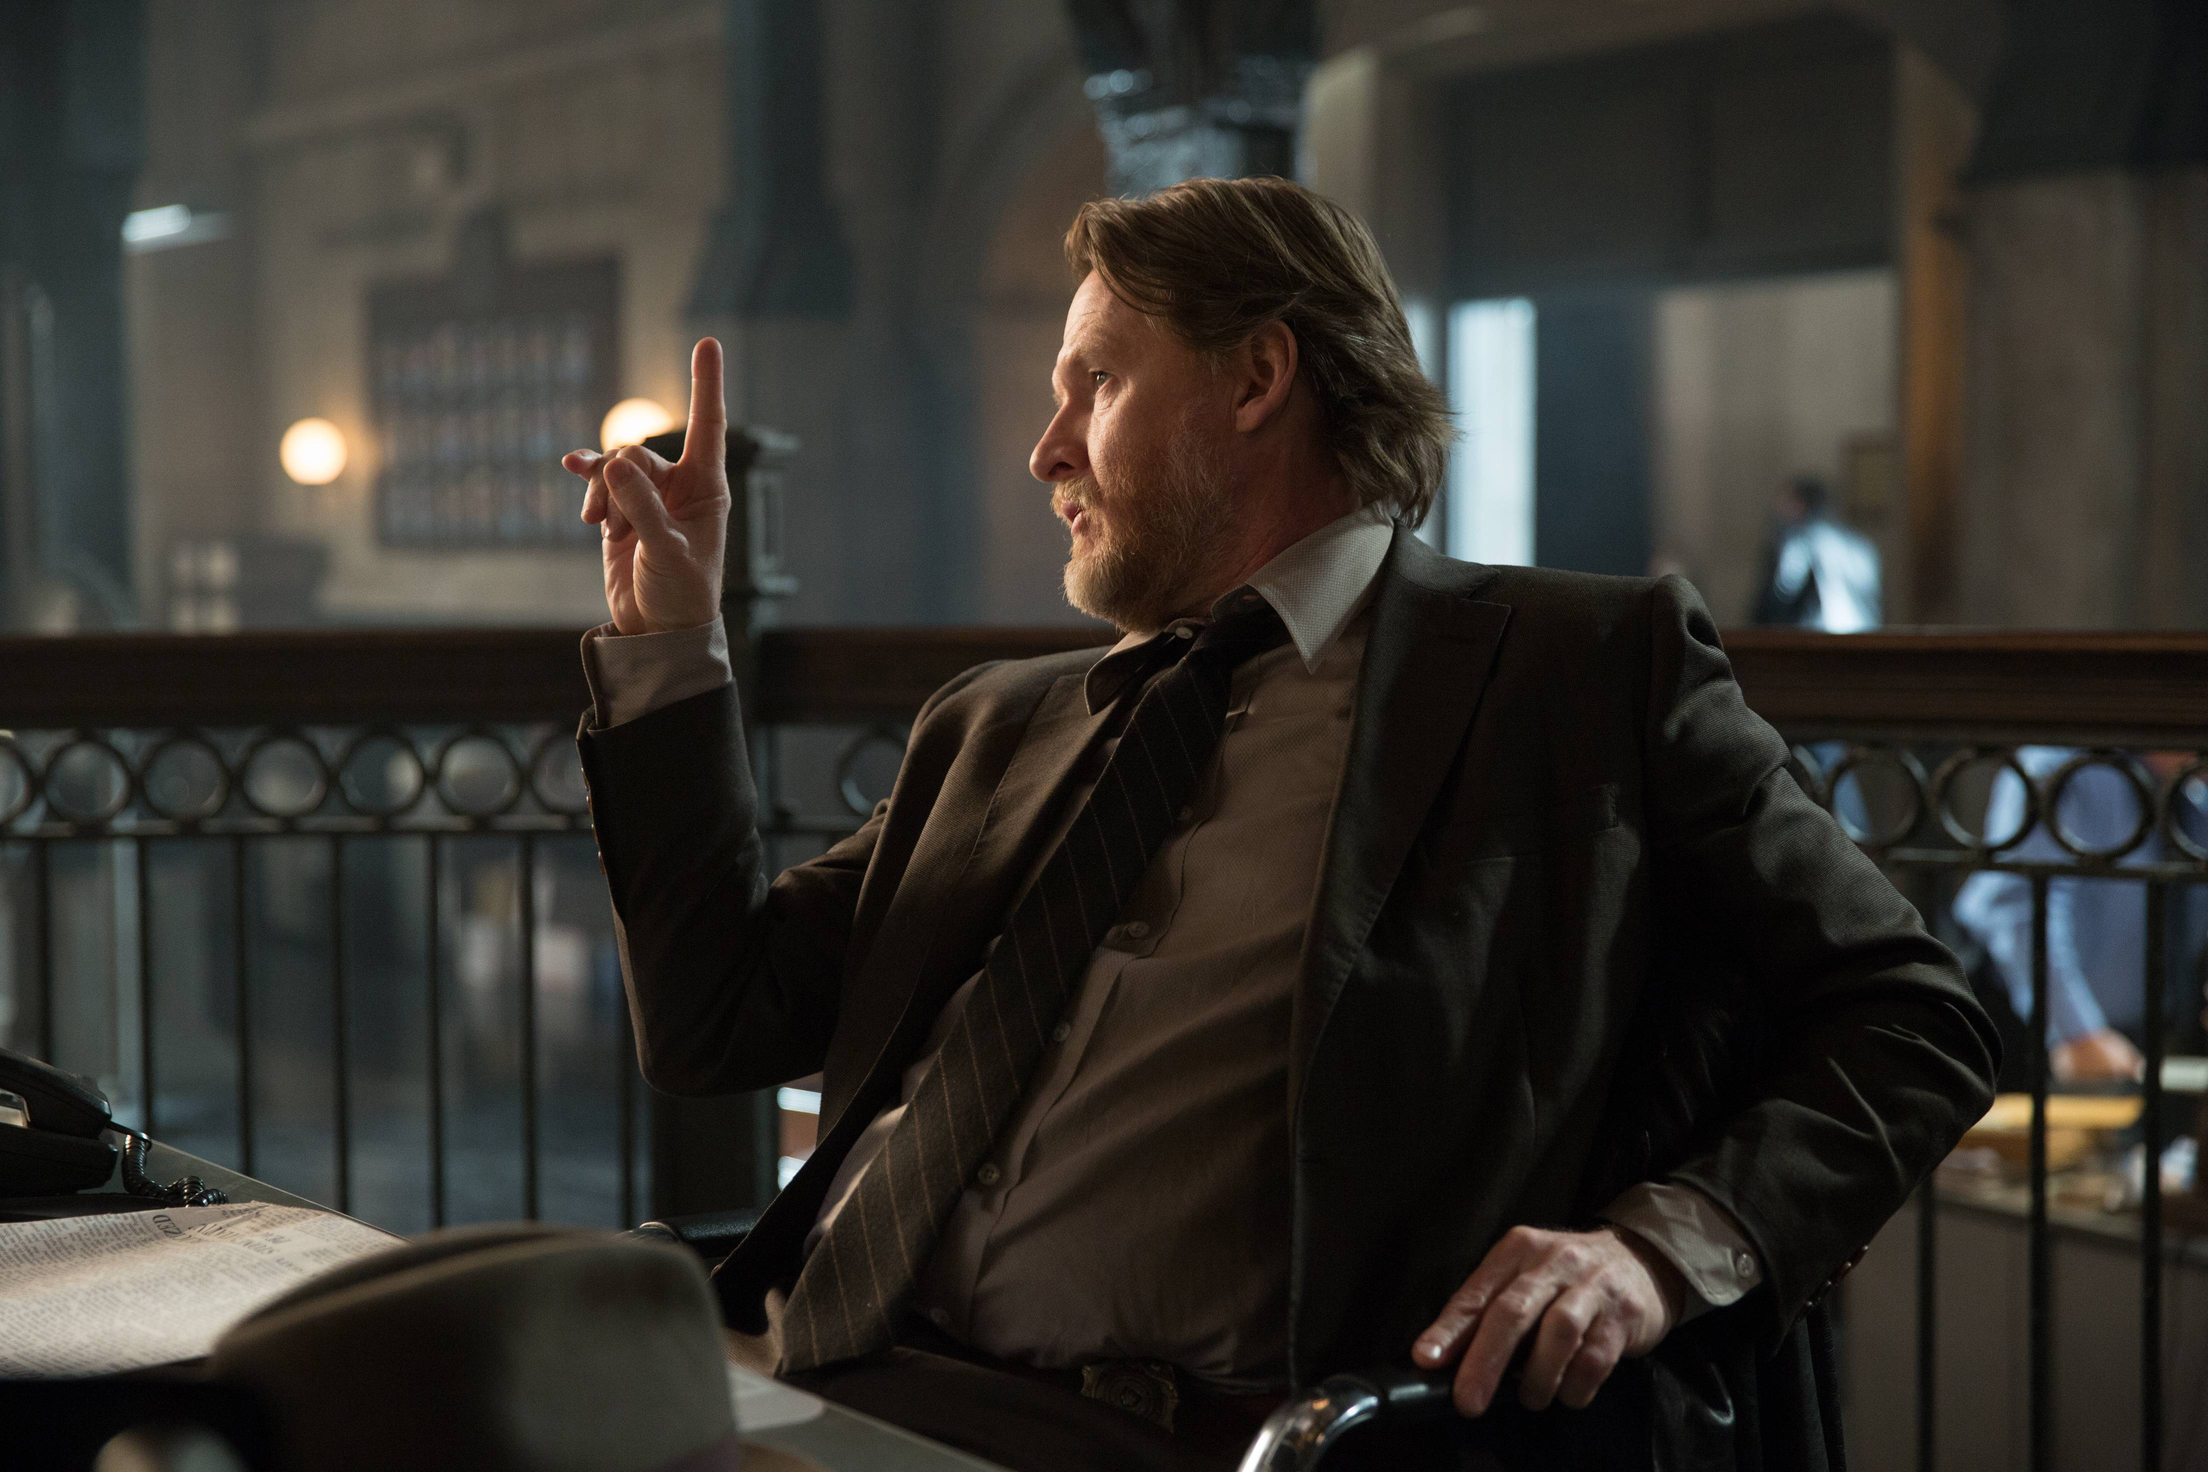 """GOTHAM: Donal Logue (Bullock) appears in the """"Beasts of Prey"""" episode of GOTHAM airing Monday, April 13 (8:00-9:00 PM ET/PT) on FOX. ©2015 Fox Broadcasting Co. Cr: Jessica Miglio/FOX"""